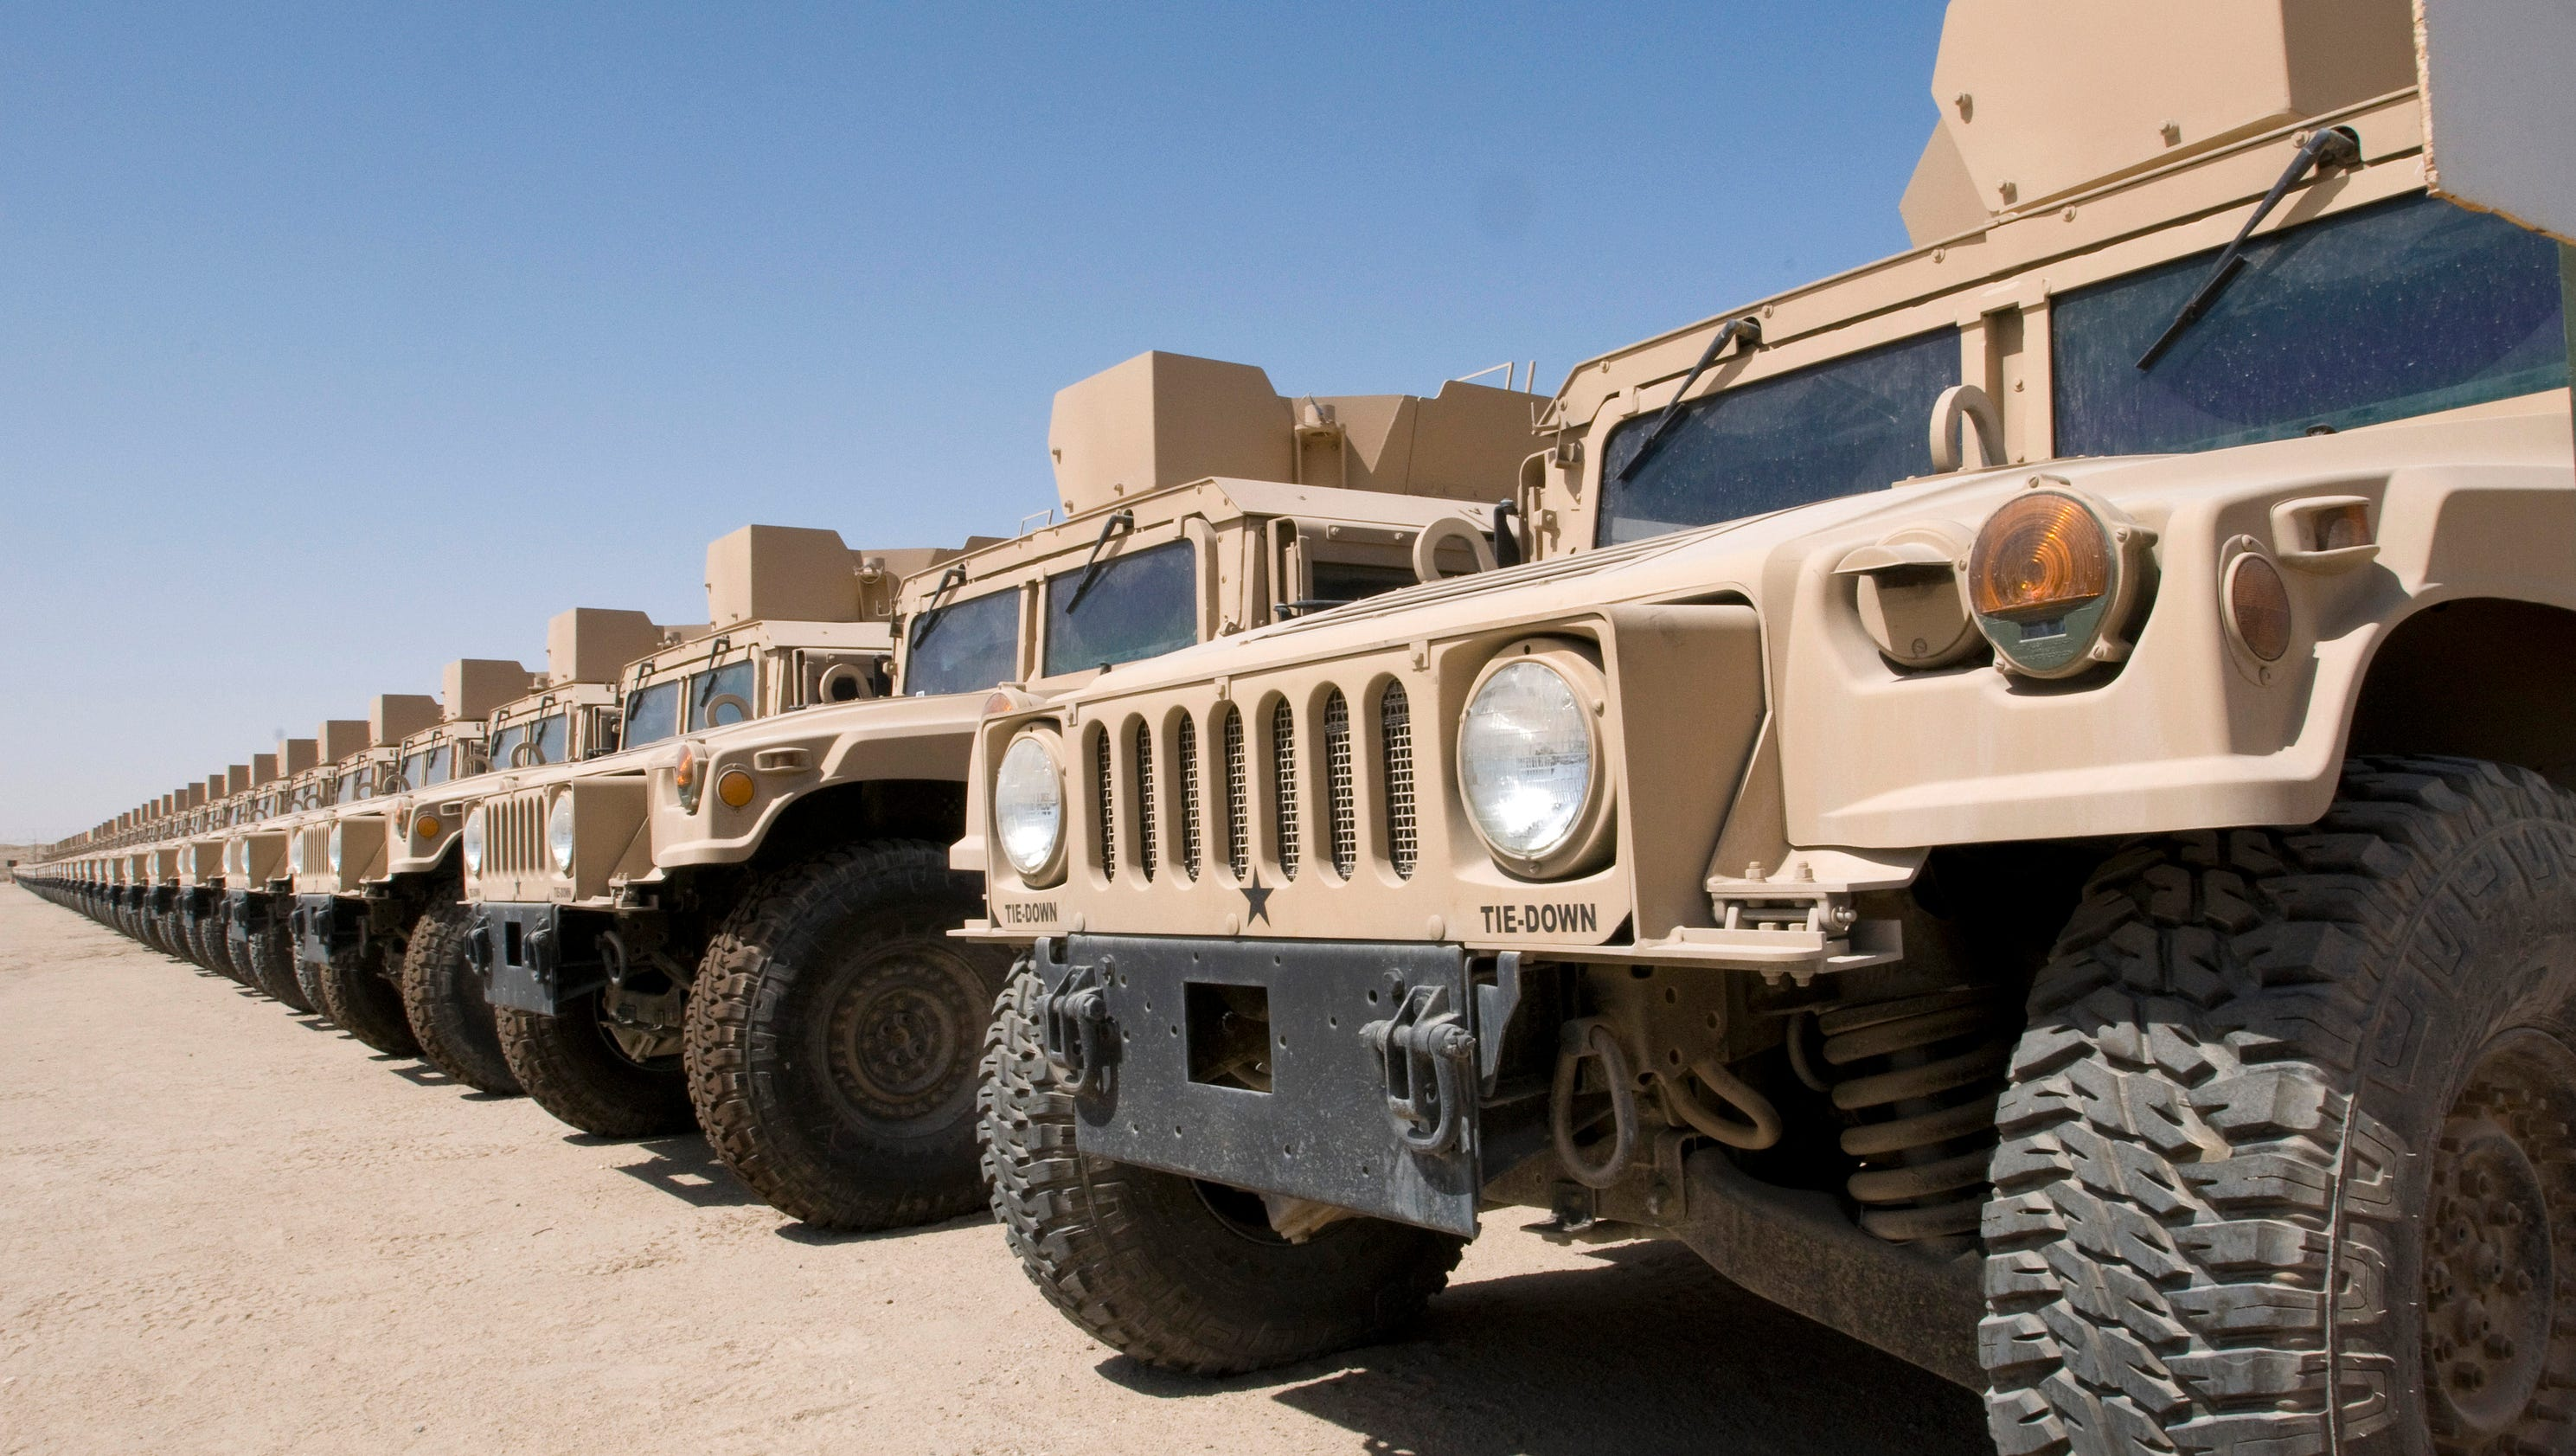 Hummers For Sale >> Surplus Humvee auctions to public a first for DoD